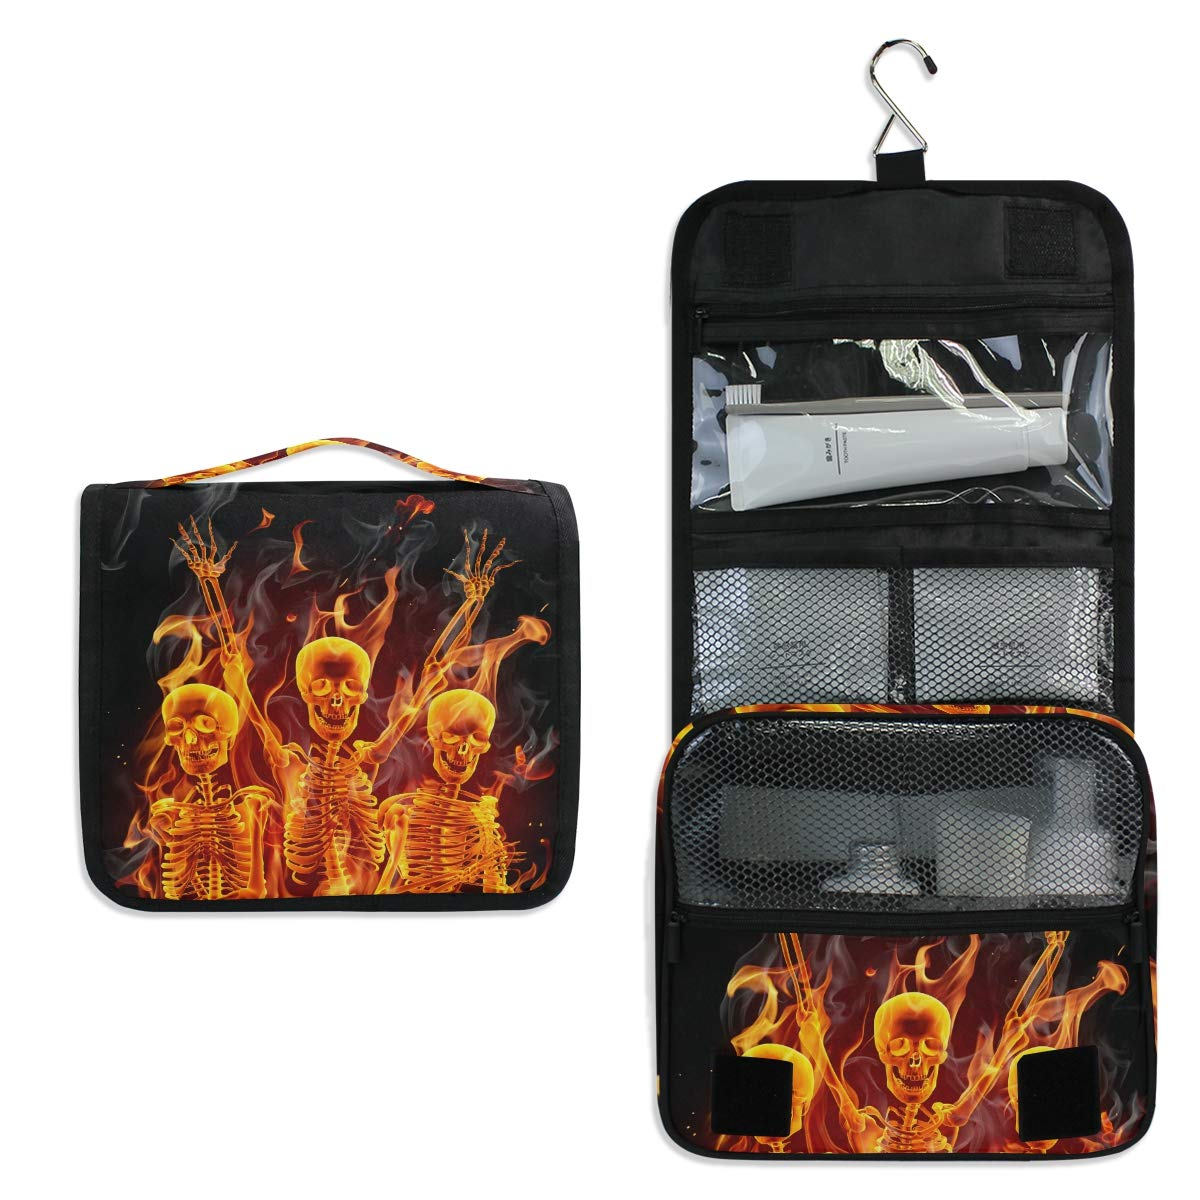 Hanging Travel Toiletry Bag - Fire Skeletons Skull Waterproof Cosmetic Bag Portable Makeup Pouch for Toiletries Bathroom